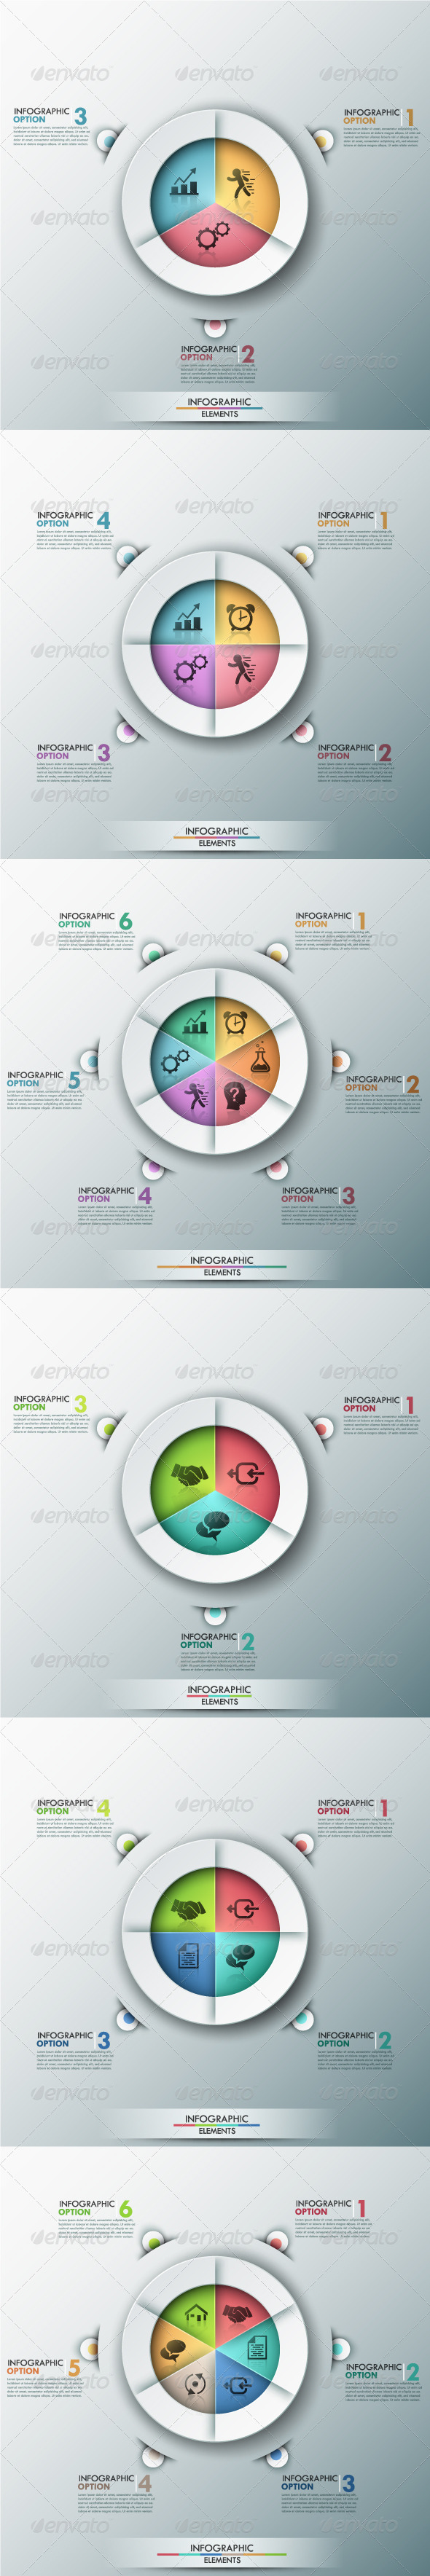 Modern Infographic Banner With Pie Chart 6 Items